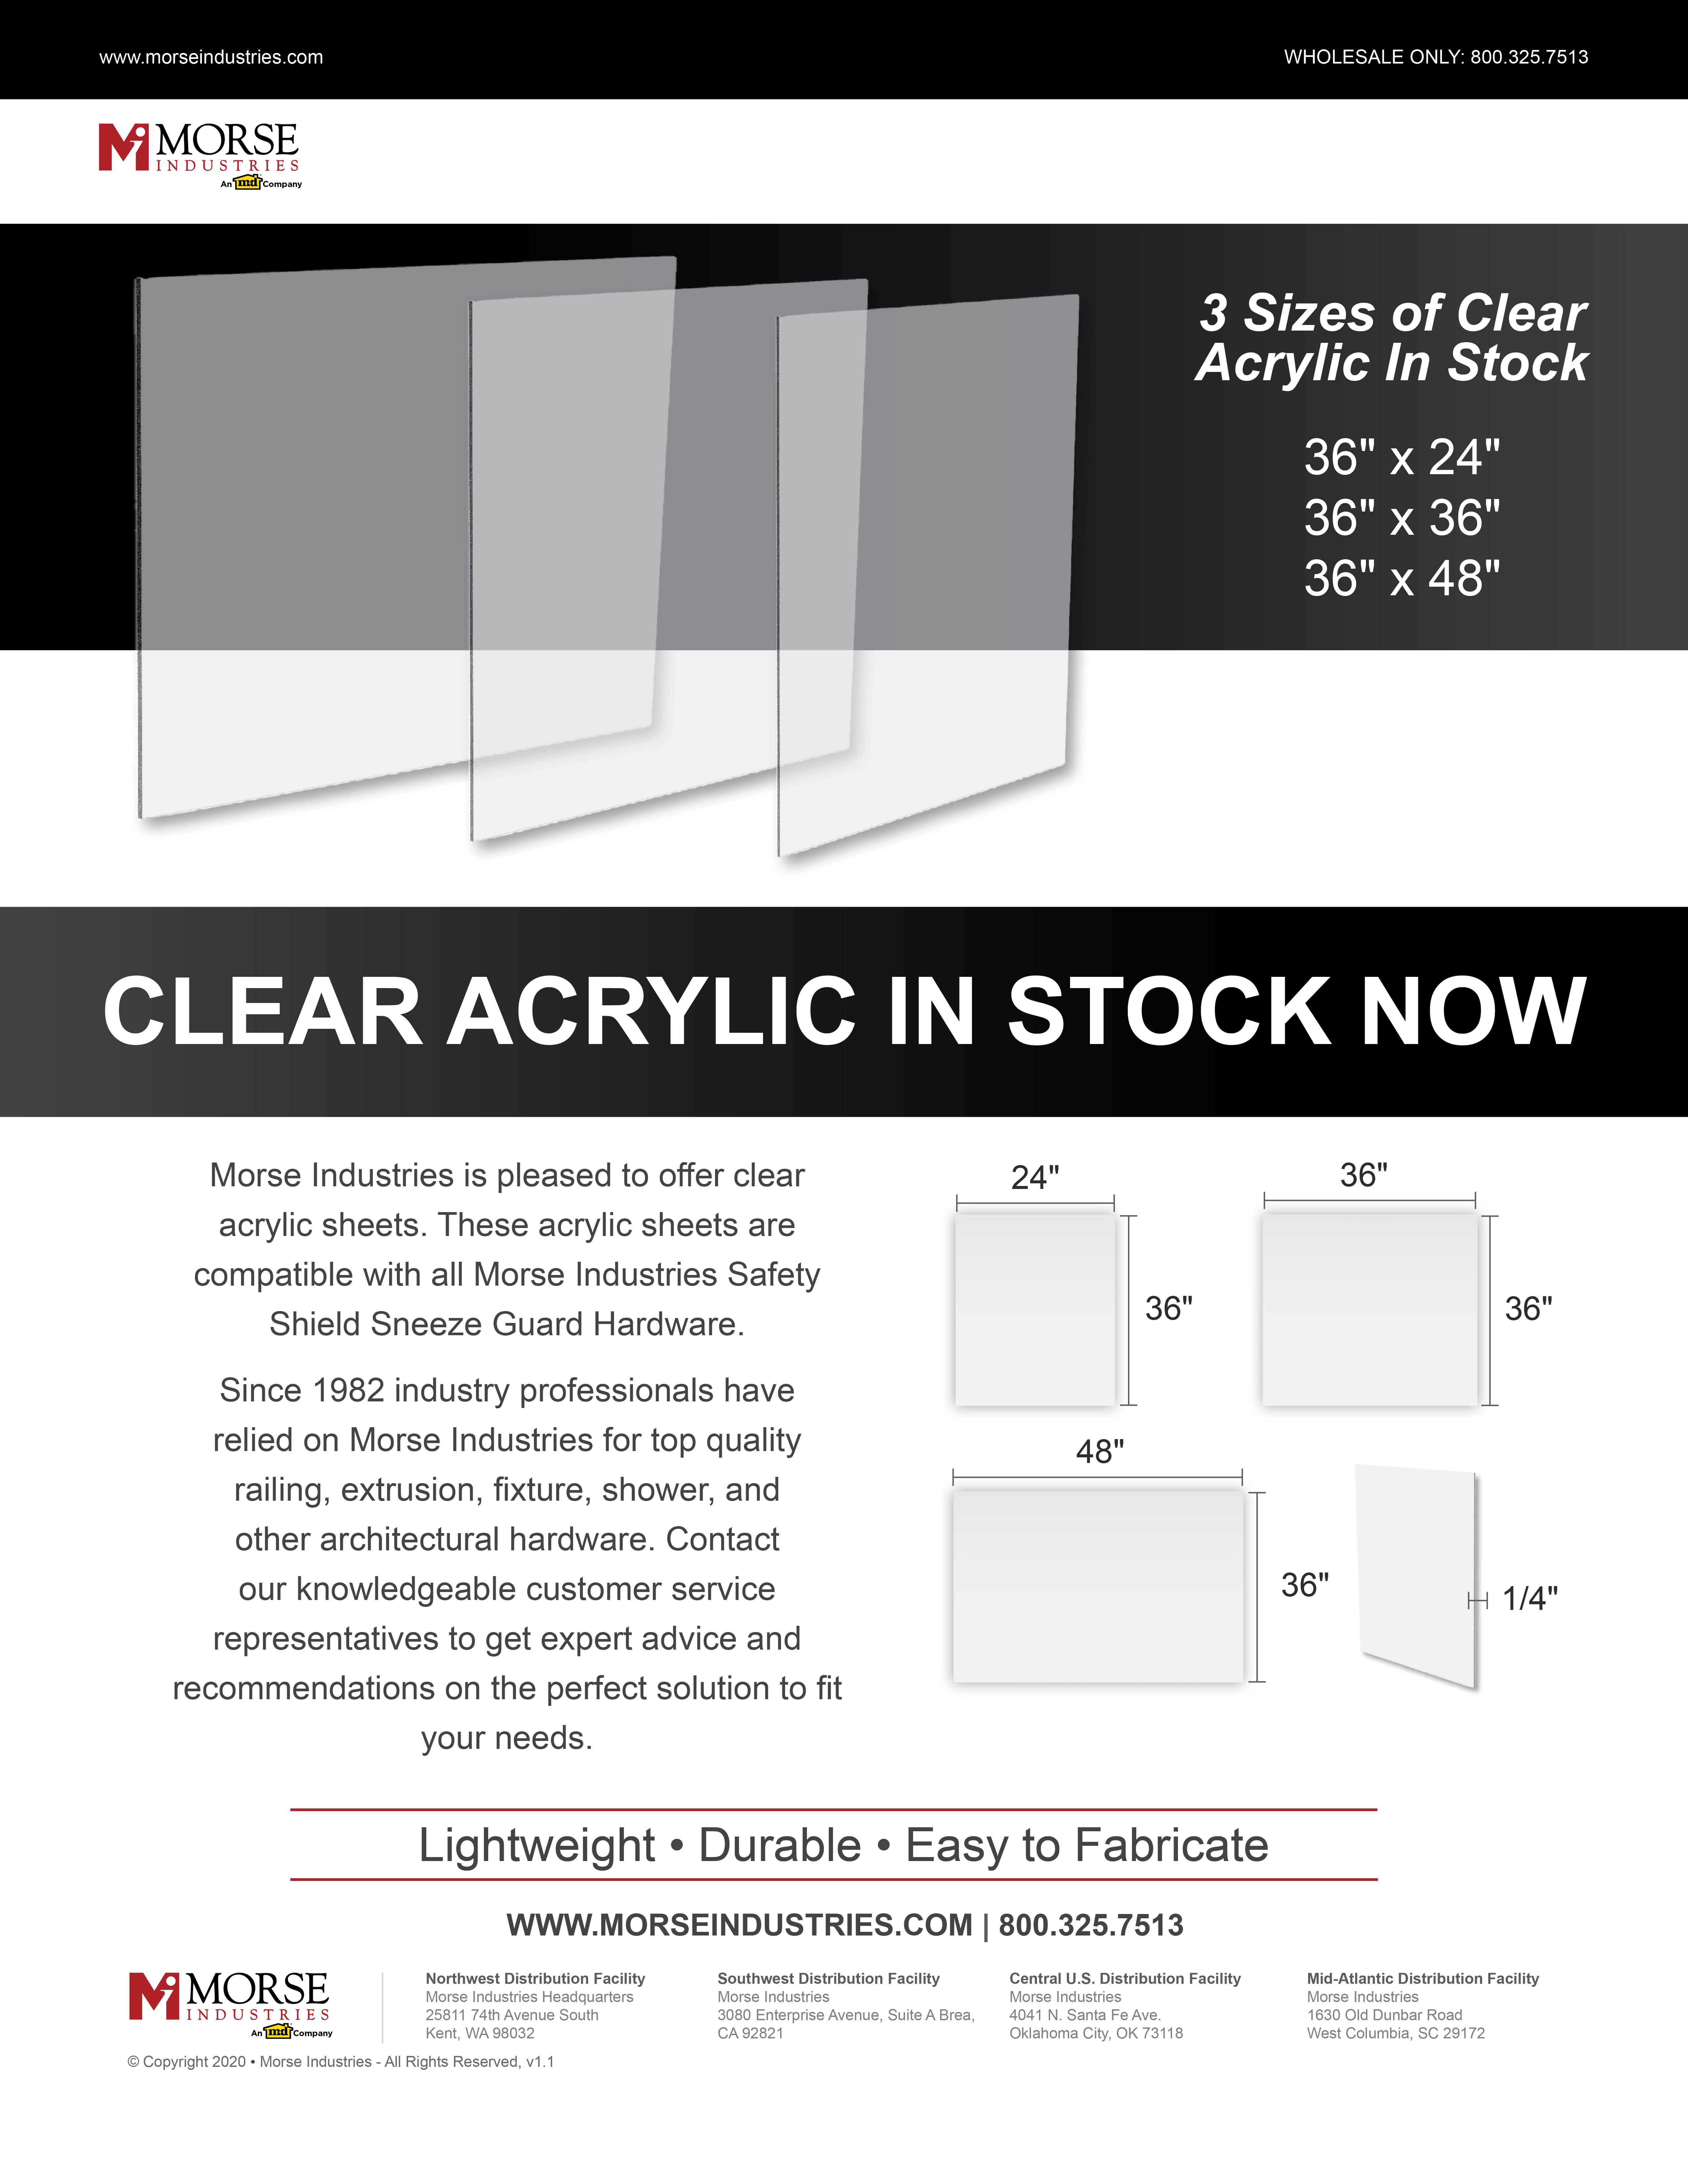 Clear Acrylic Promotional Flyer